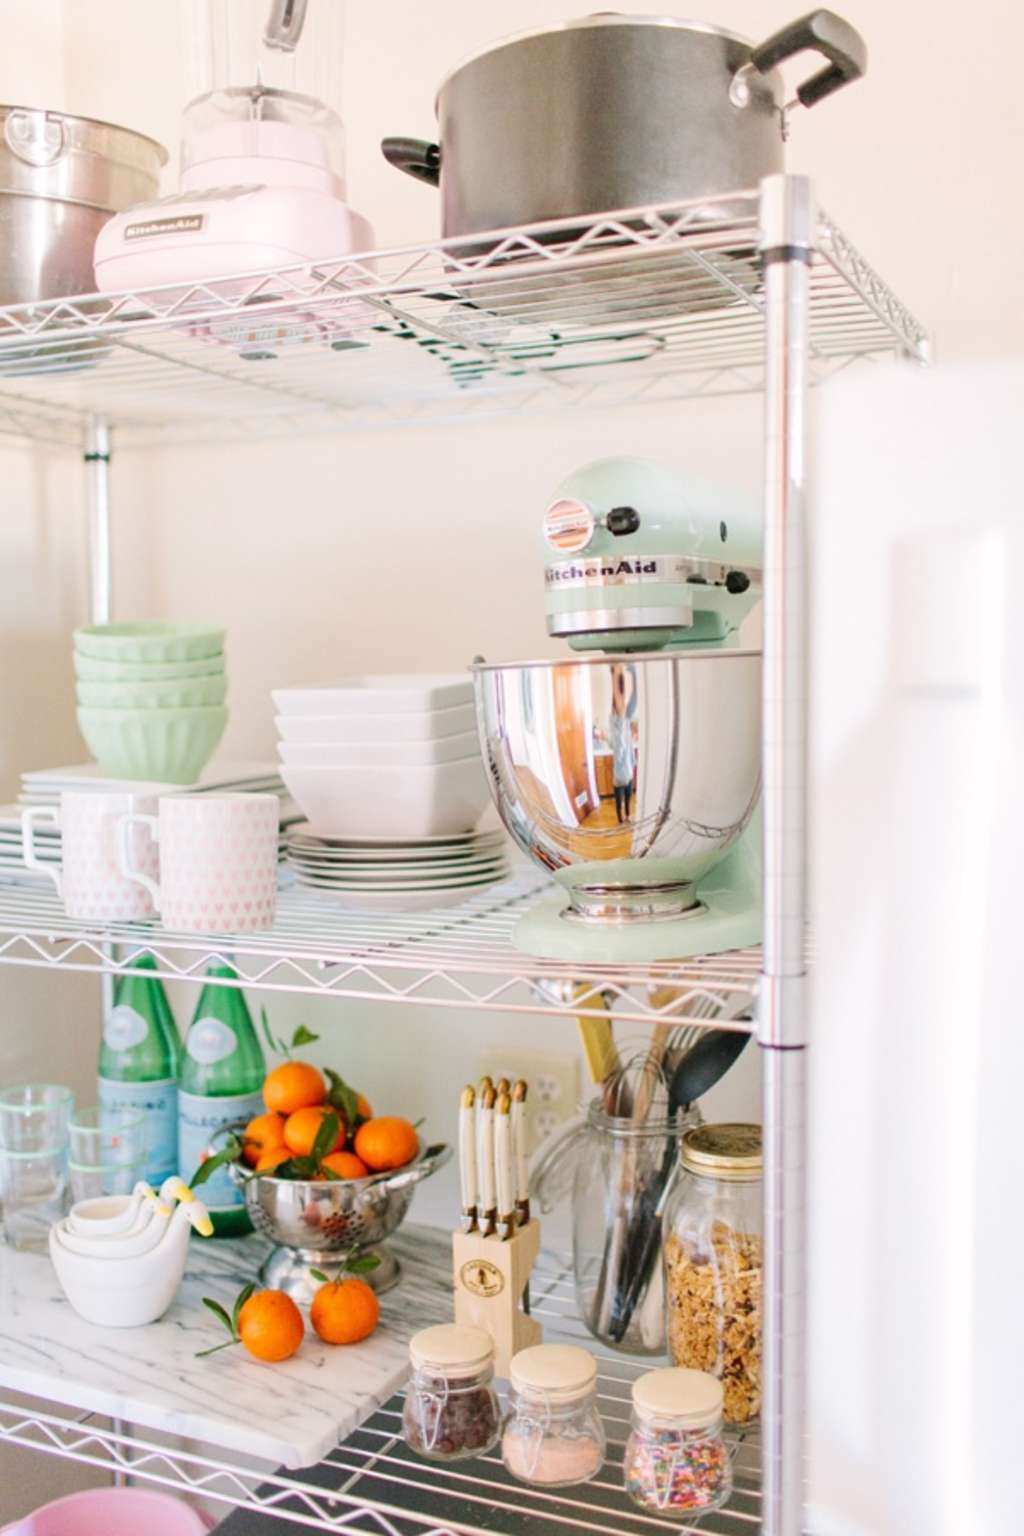 kitchen shelving ideas inspirational plan for natural | Wire Shelving Units in the Kitchen: Simple, Cheap, and ...